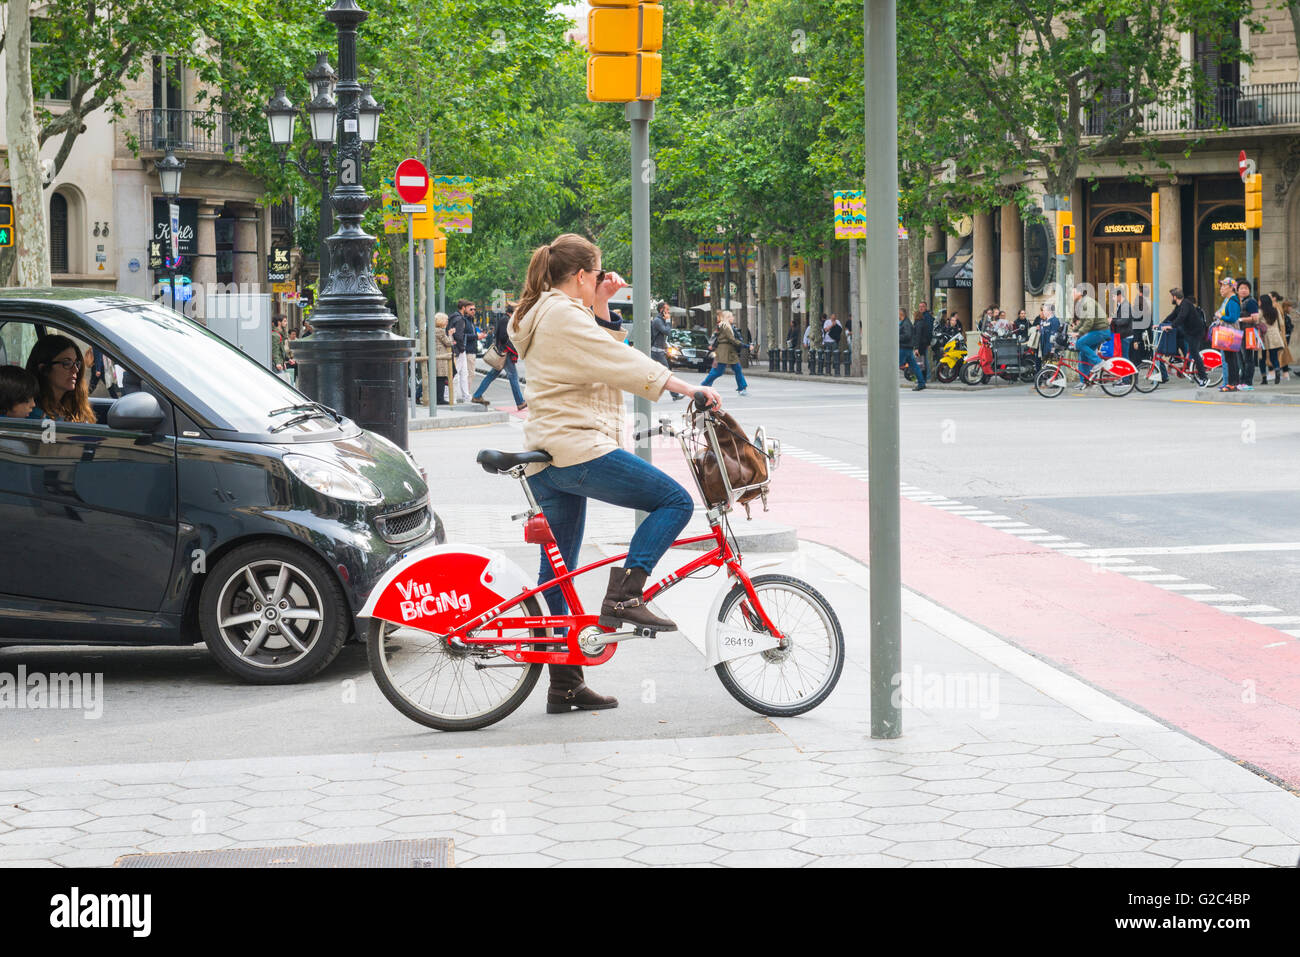 Spain Catalonia Barcelona young girl at lights on hire City bike bicycle cycle Viu BiCiNg Bicing red livery Stock Photo